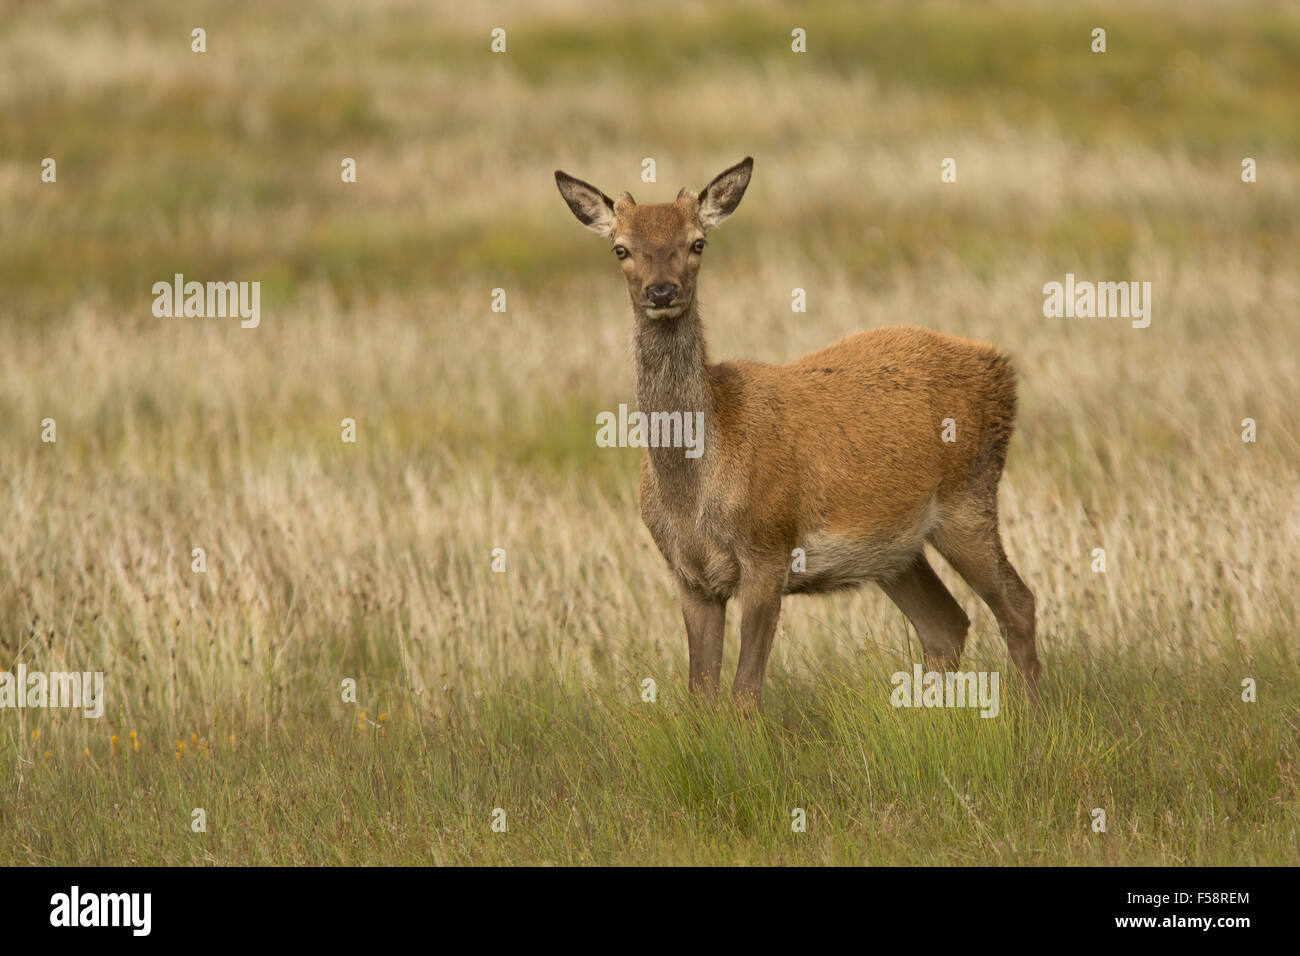 a red deer hind stands alert in the grass on the Outer Hebrides, Scotland - Stock Image